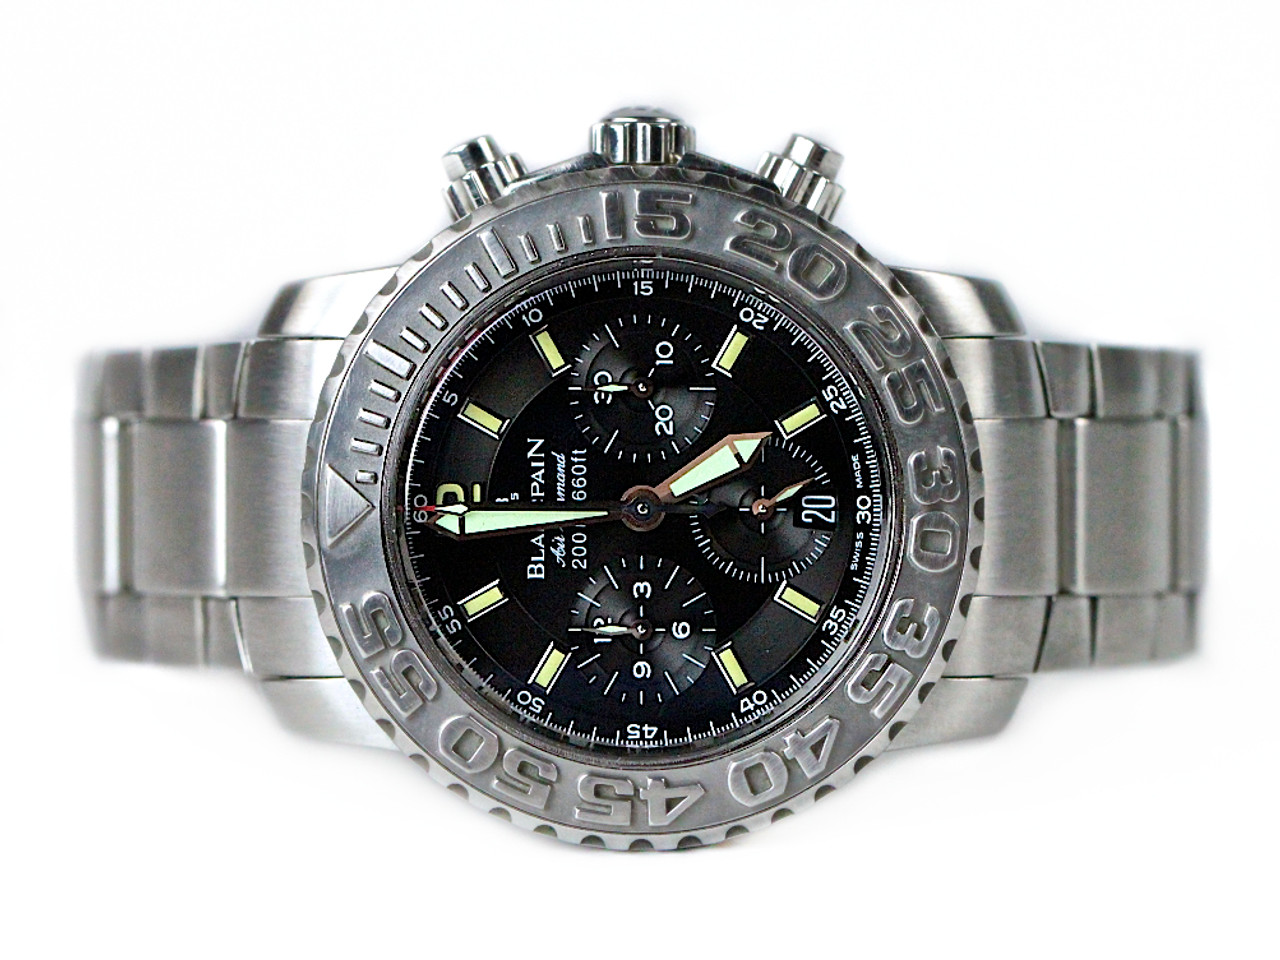 Blancpain Watch Air Command Flyback Chronograph 2285f 1130 71 Used For Sale From Legend Of Time Chicago Watch Center